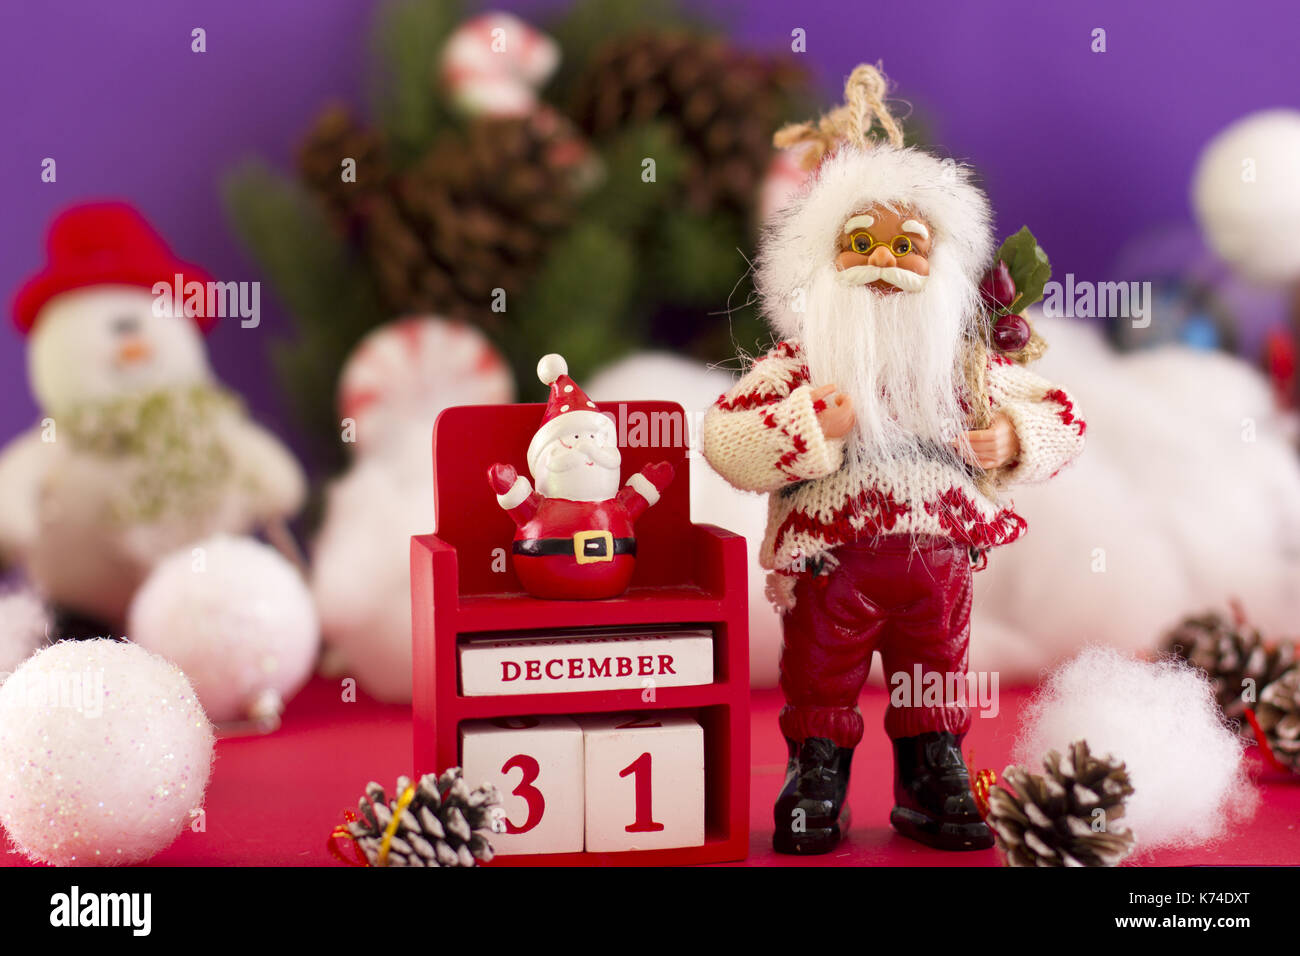 santa claus and new years calendar on december 31 on the background of a spruce wreath a snowman and christmas balls